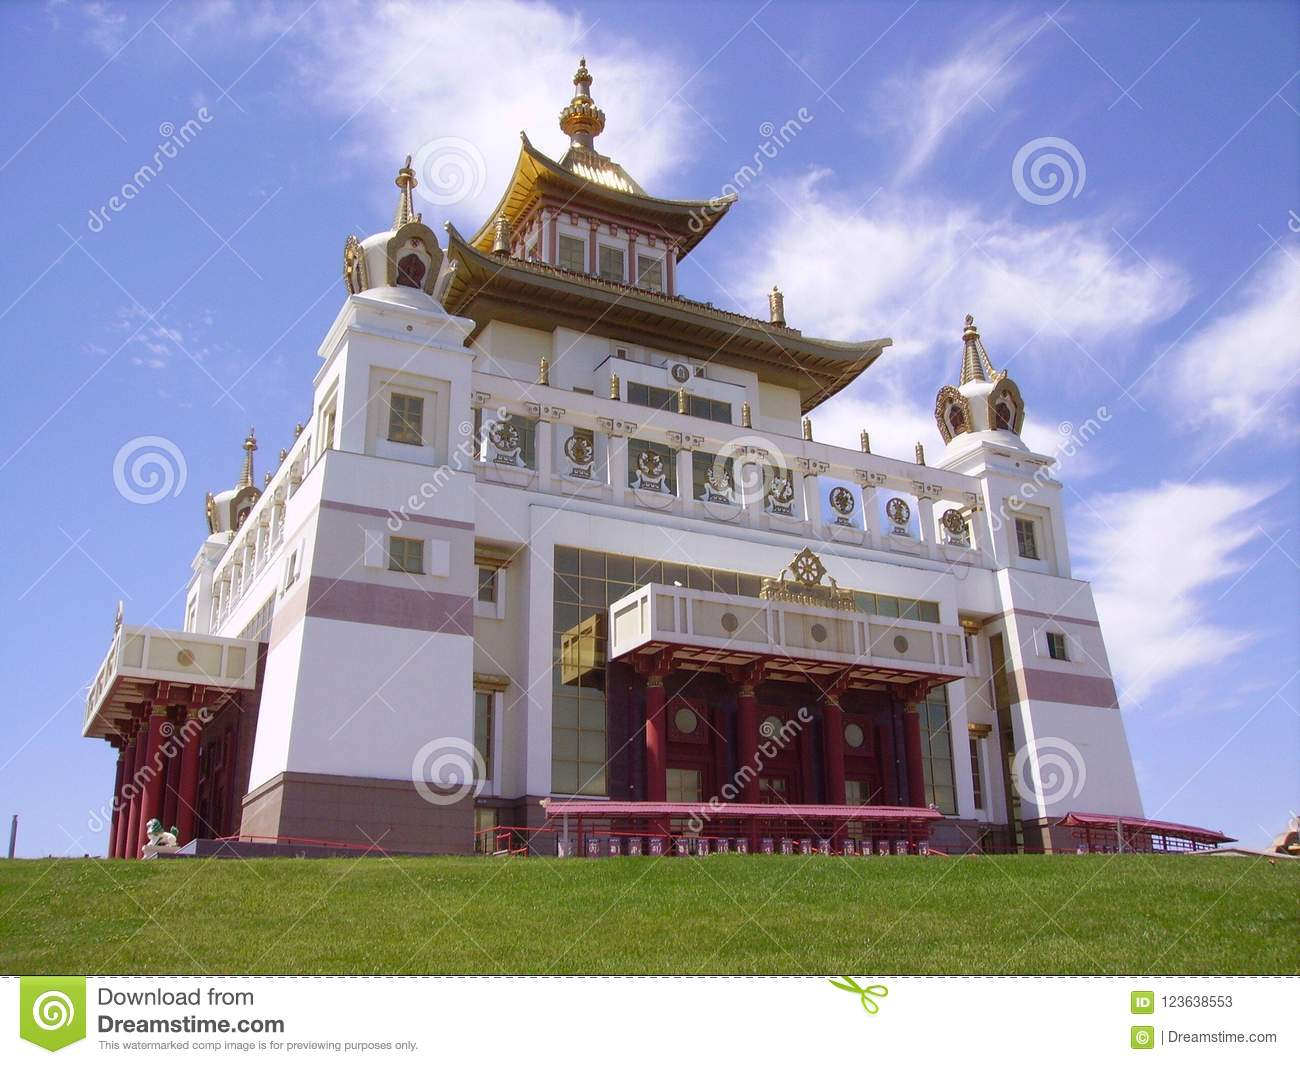 The largest temple in Russia 55